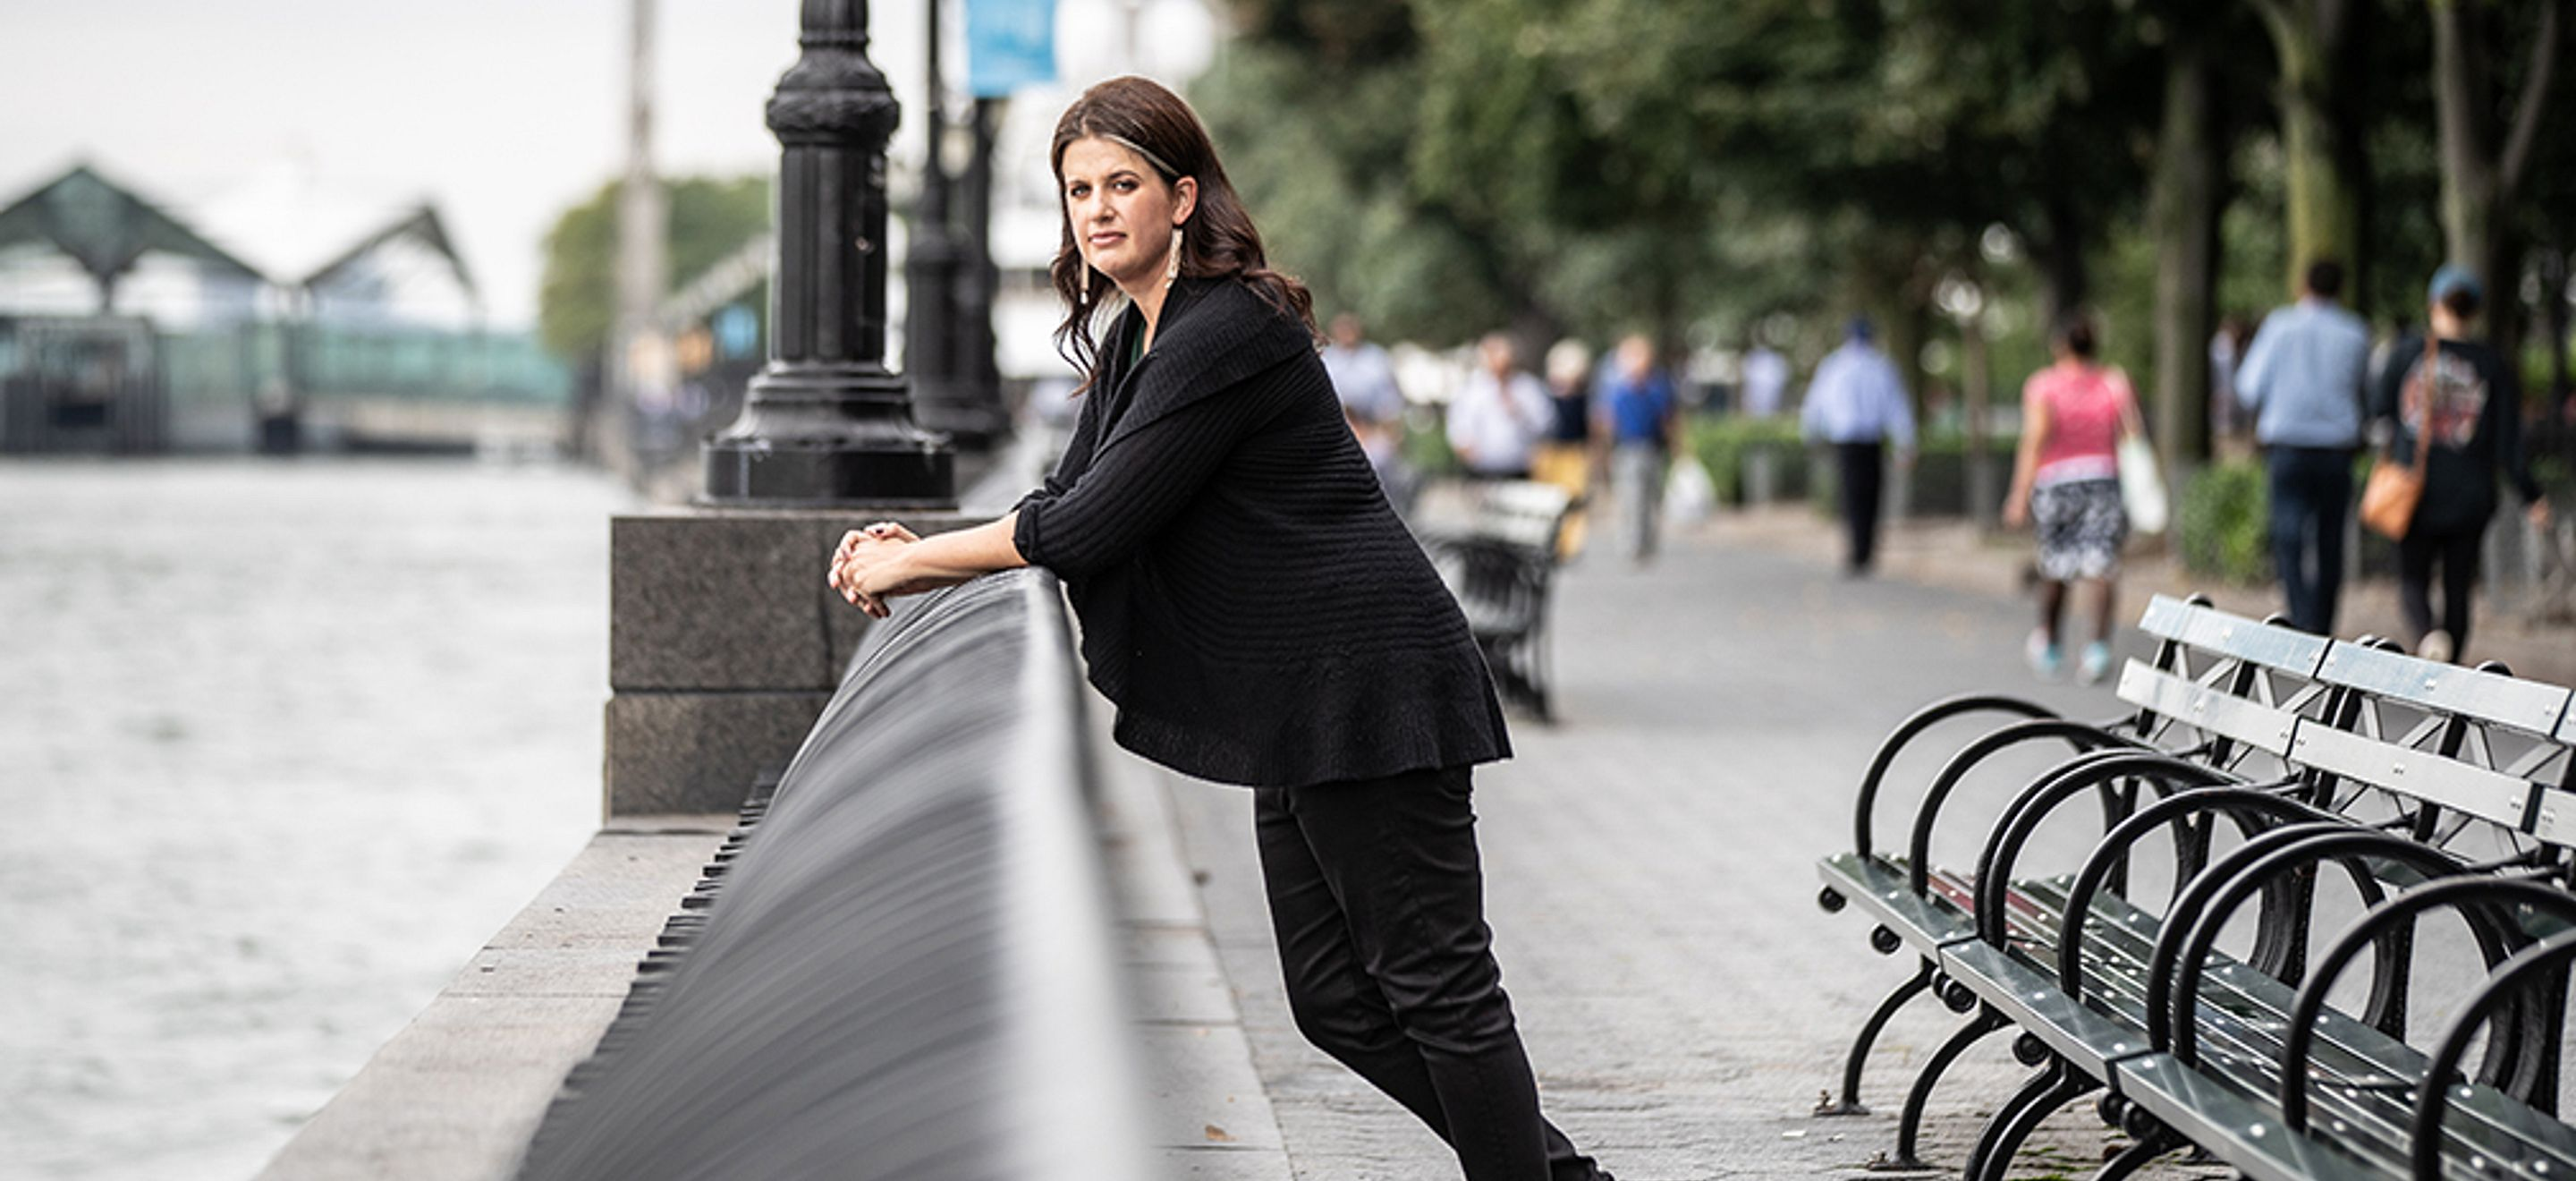 IRAP Executive Director Becca Heller leans against a railing in Battery Park. She wears black jeans, a sweater, and sneakers.